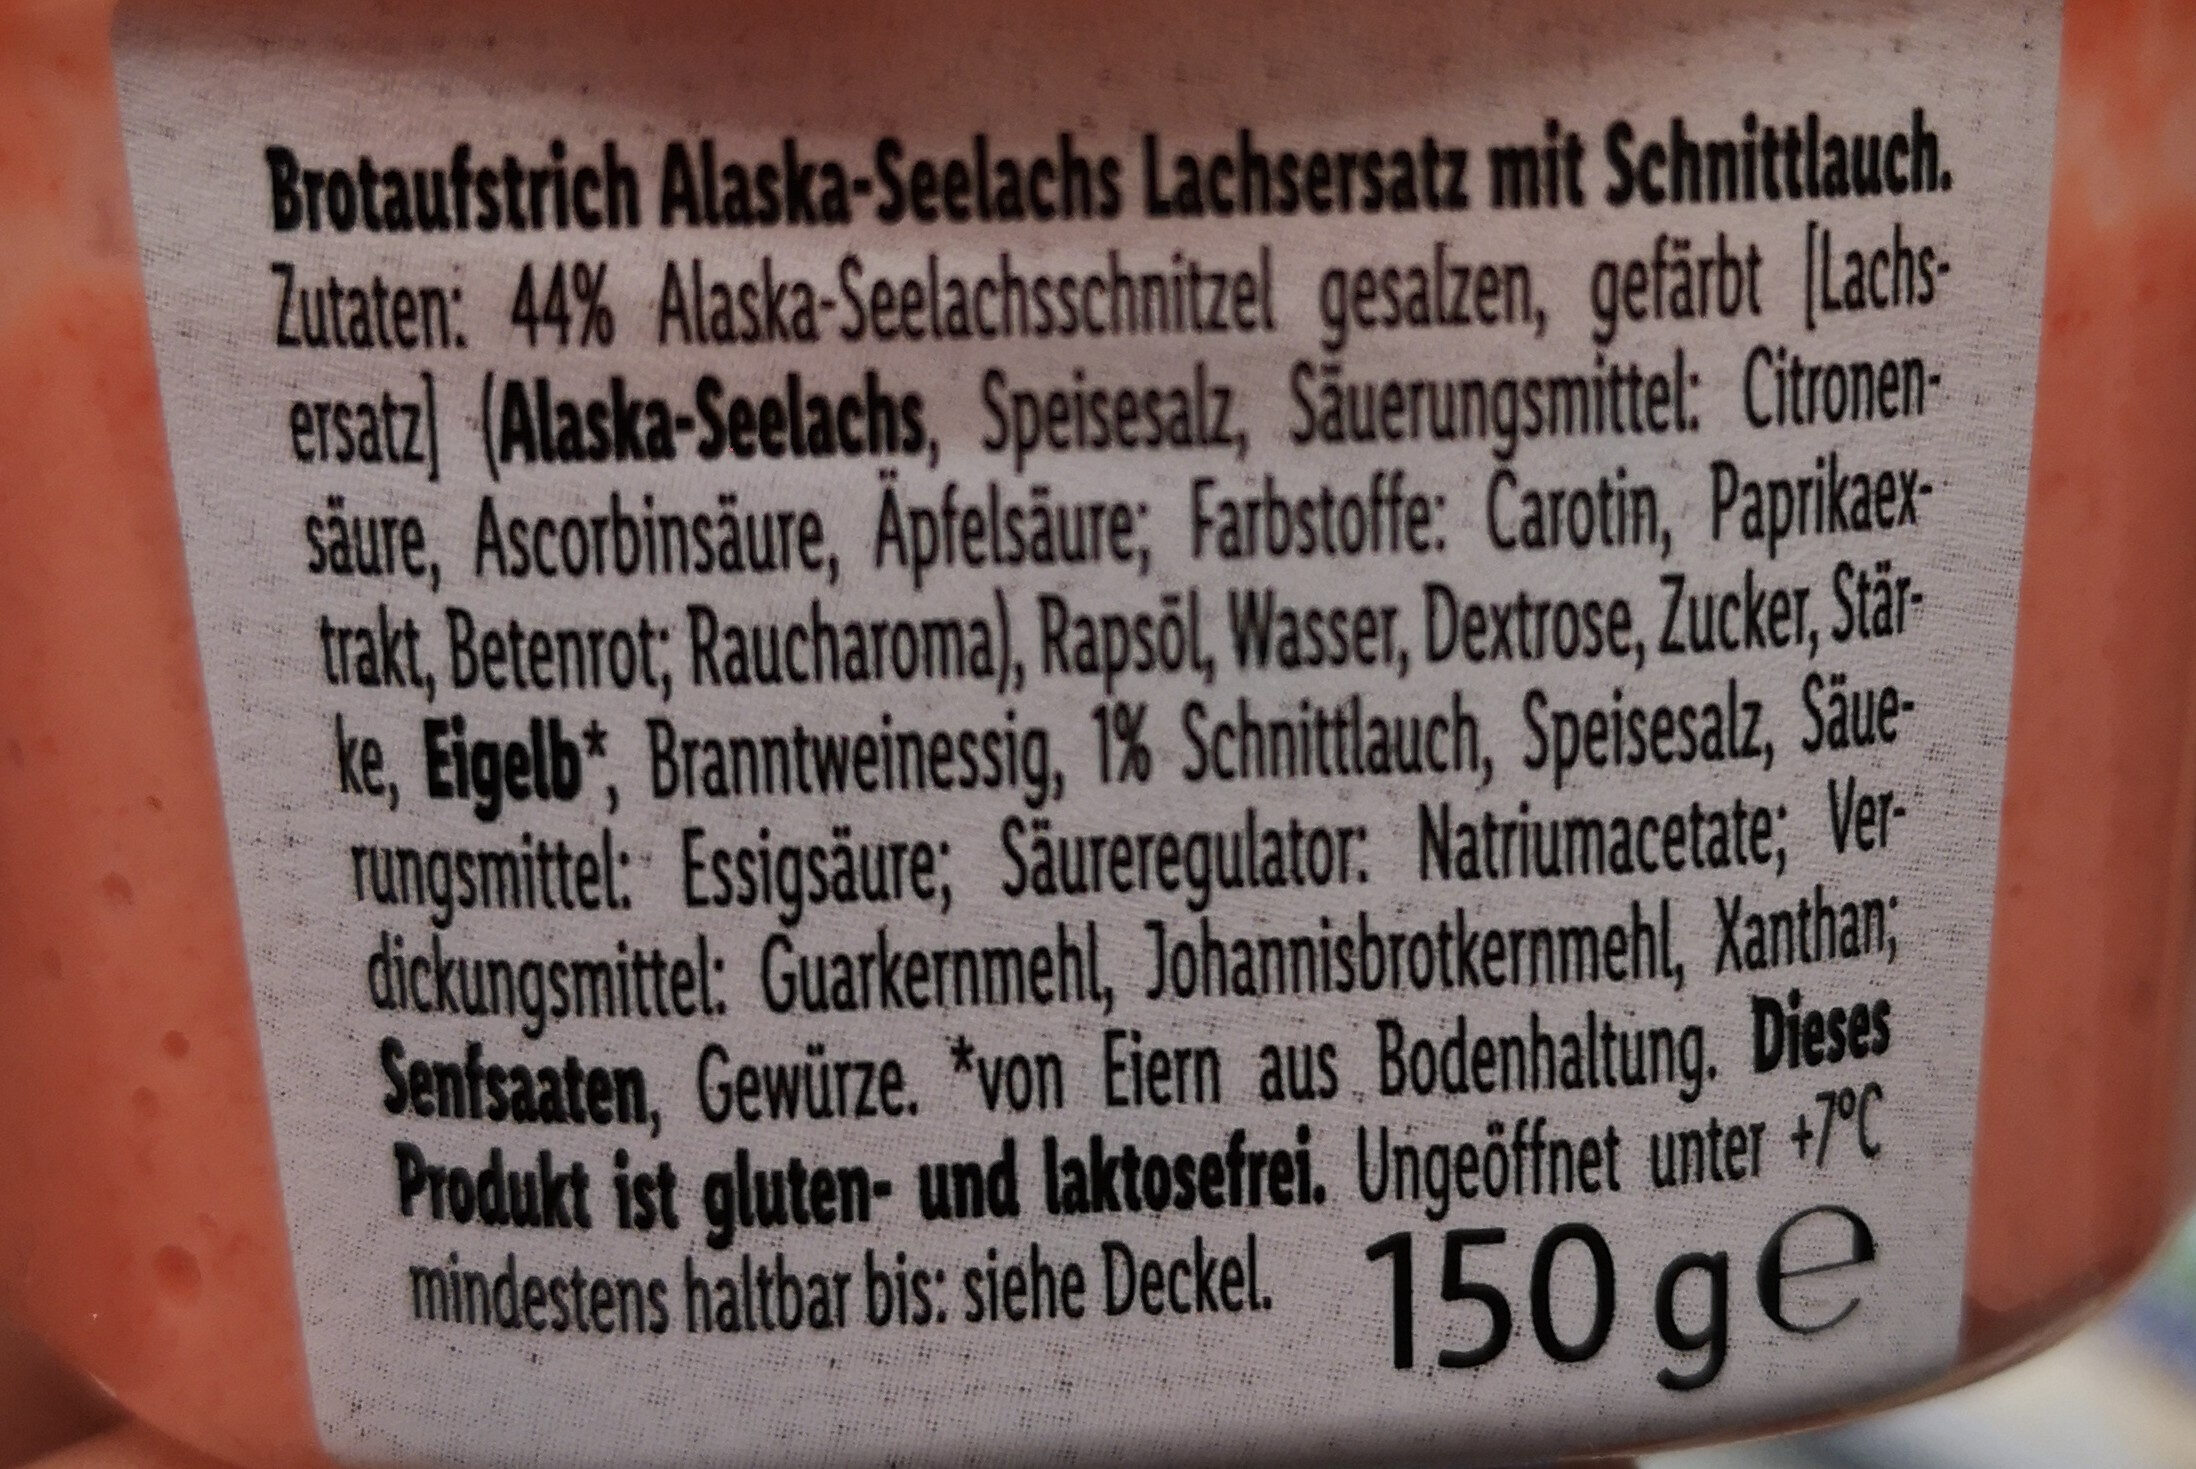 Brotaufstrich Alaska-Seelachs - Ingredients - de